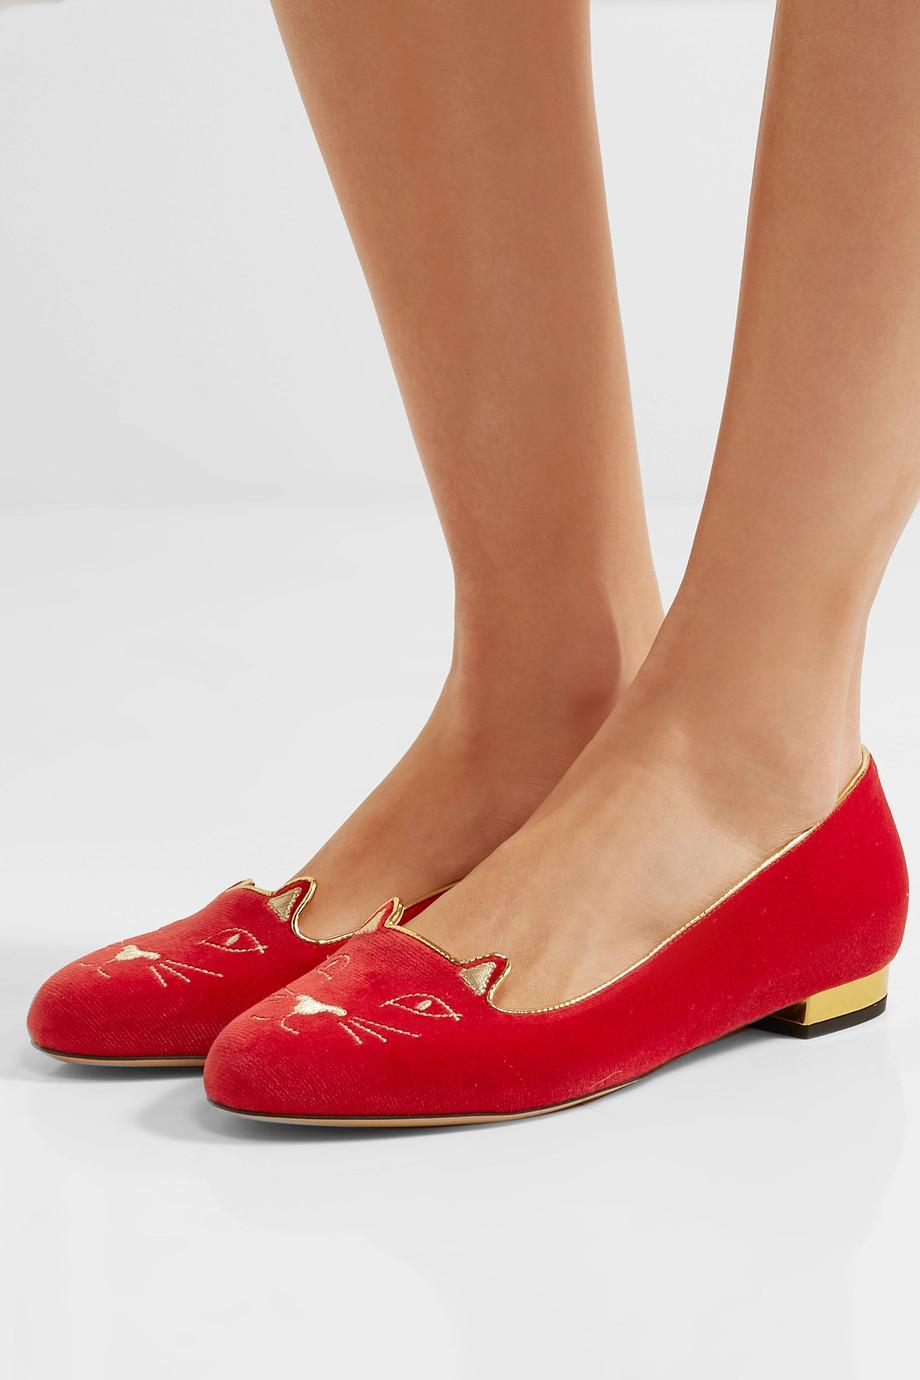 Charlotte Olympia Red Velvet Kitty Slippers | Spring trends to wear now